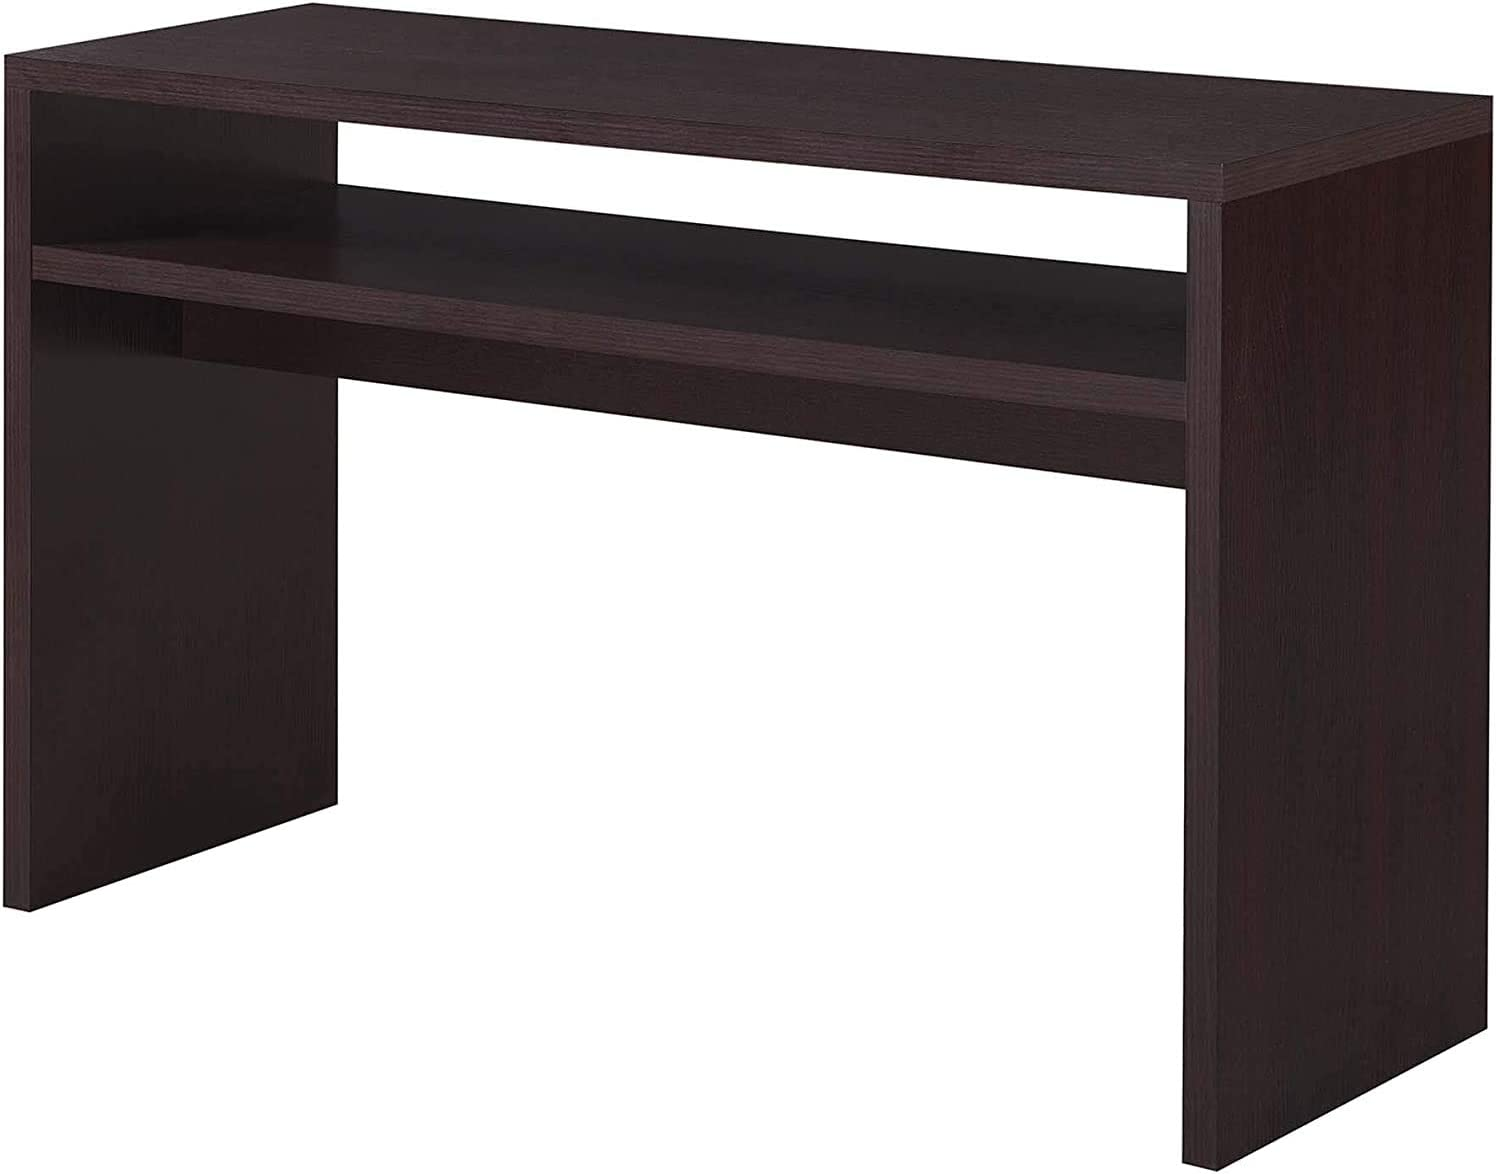 Convenience Concepts Northfield Deluxe Console Table, Espresso